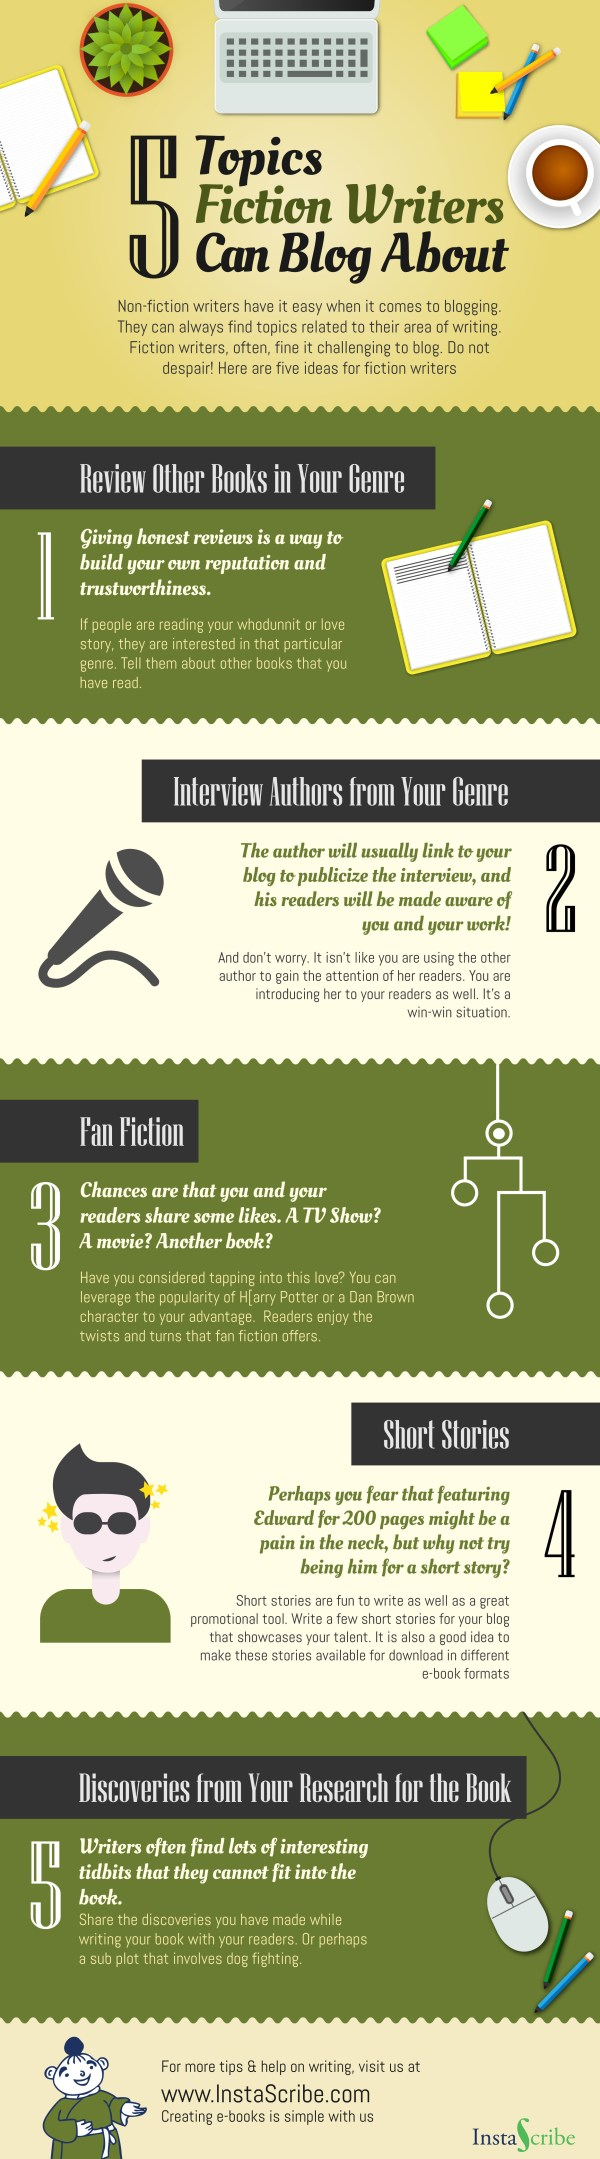 5 Topics Fiction Writers Can Blog About